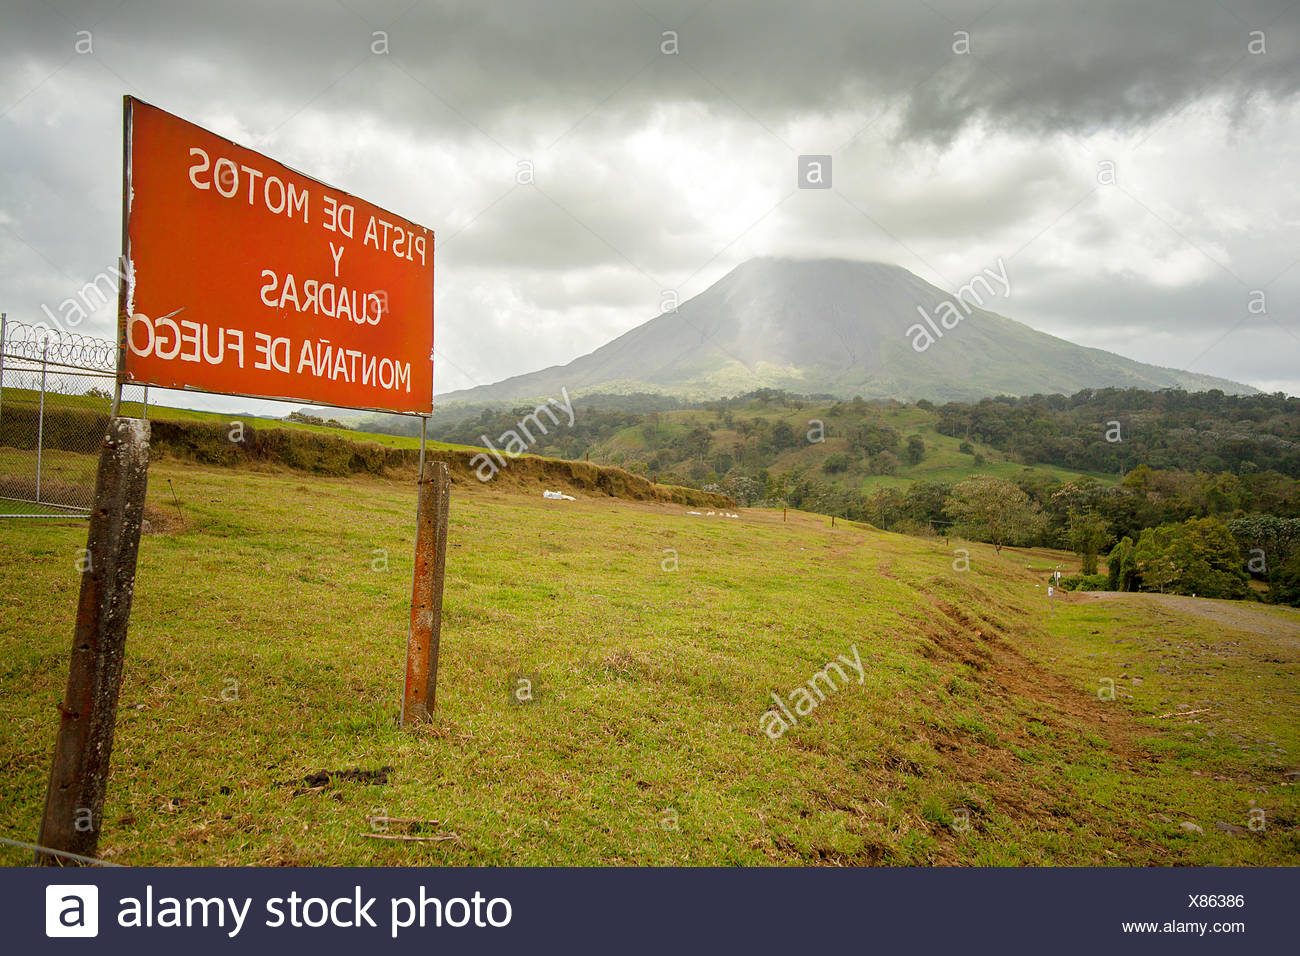 Arenal Volcano in Costa Rica - Stock Image